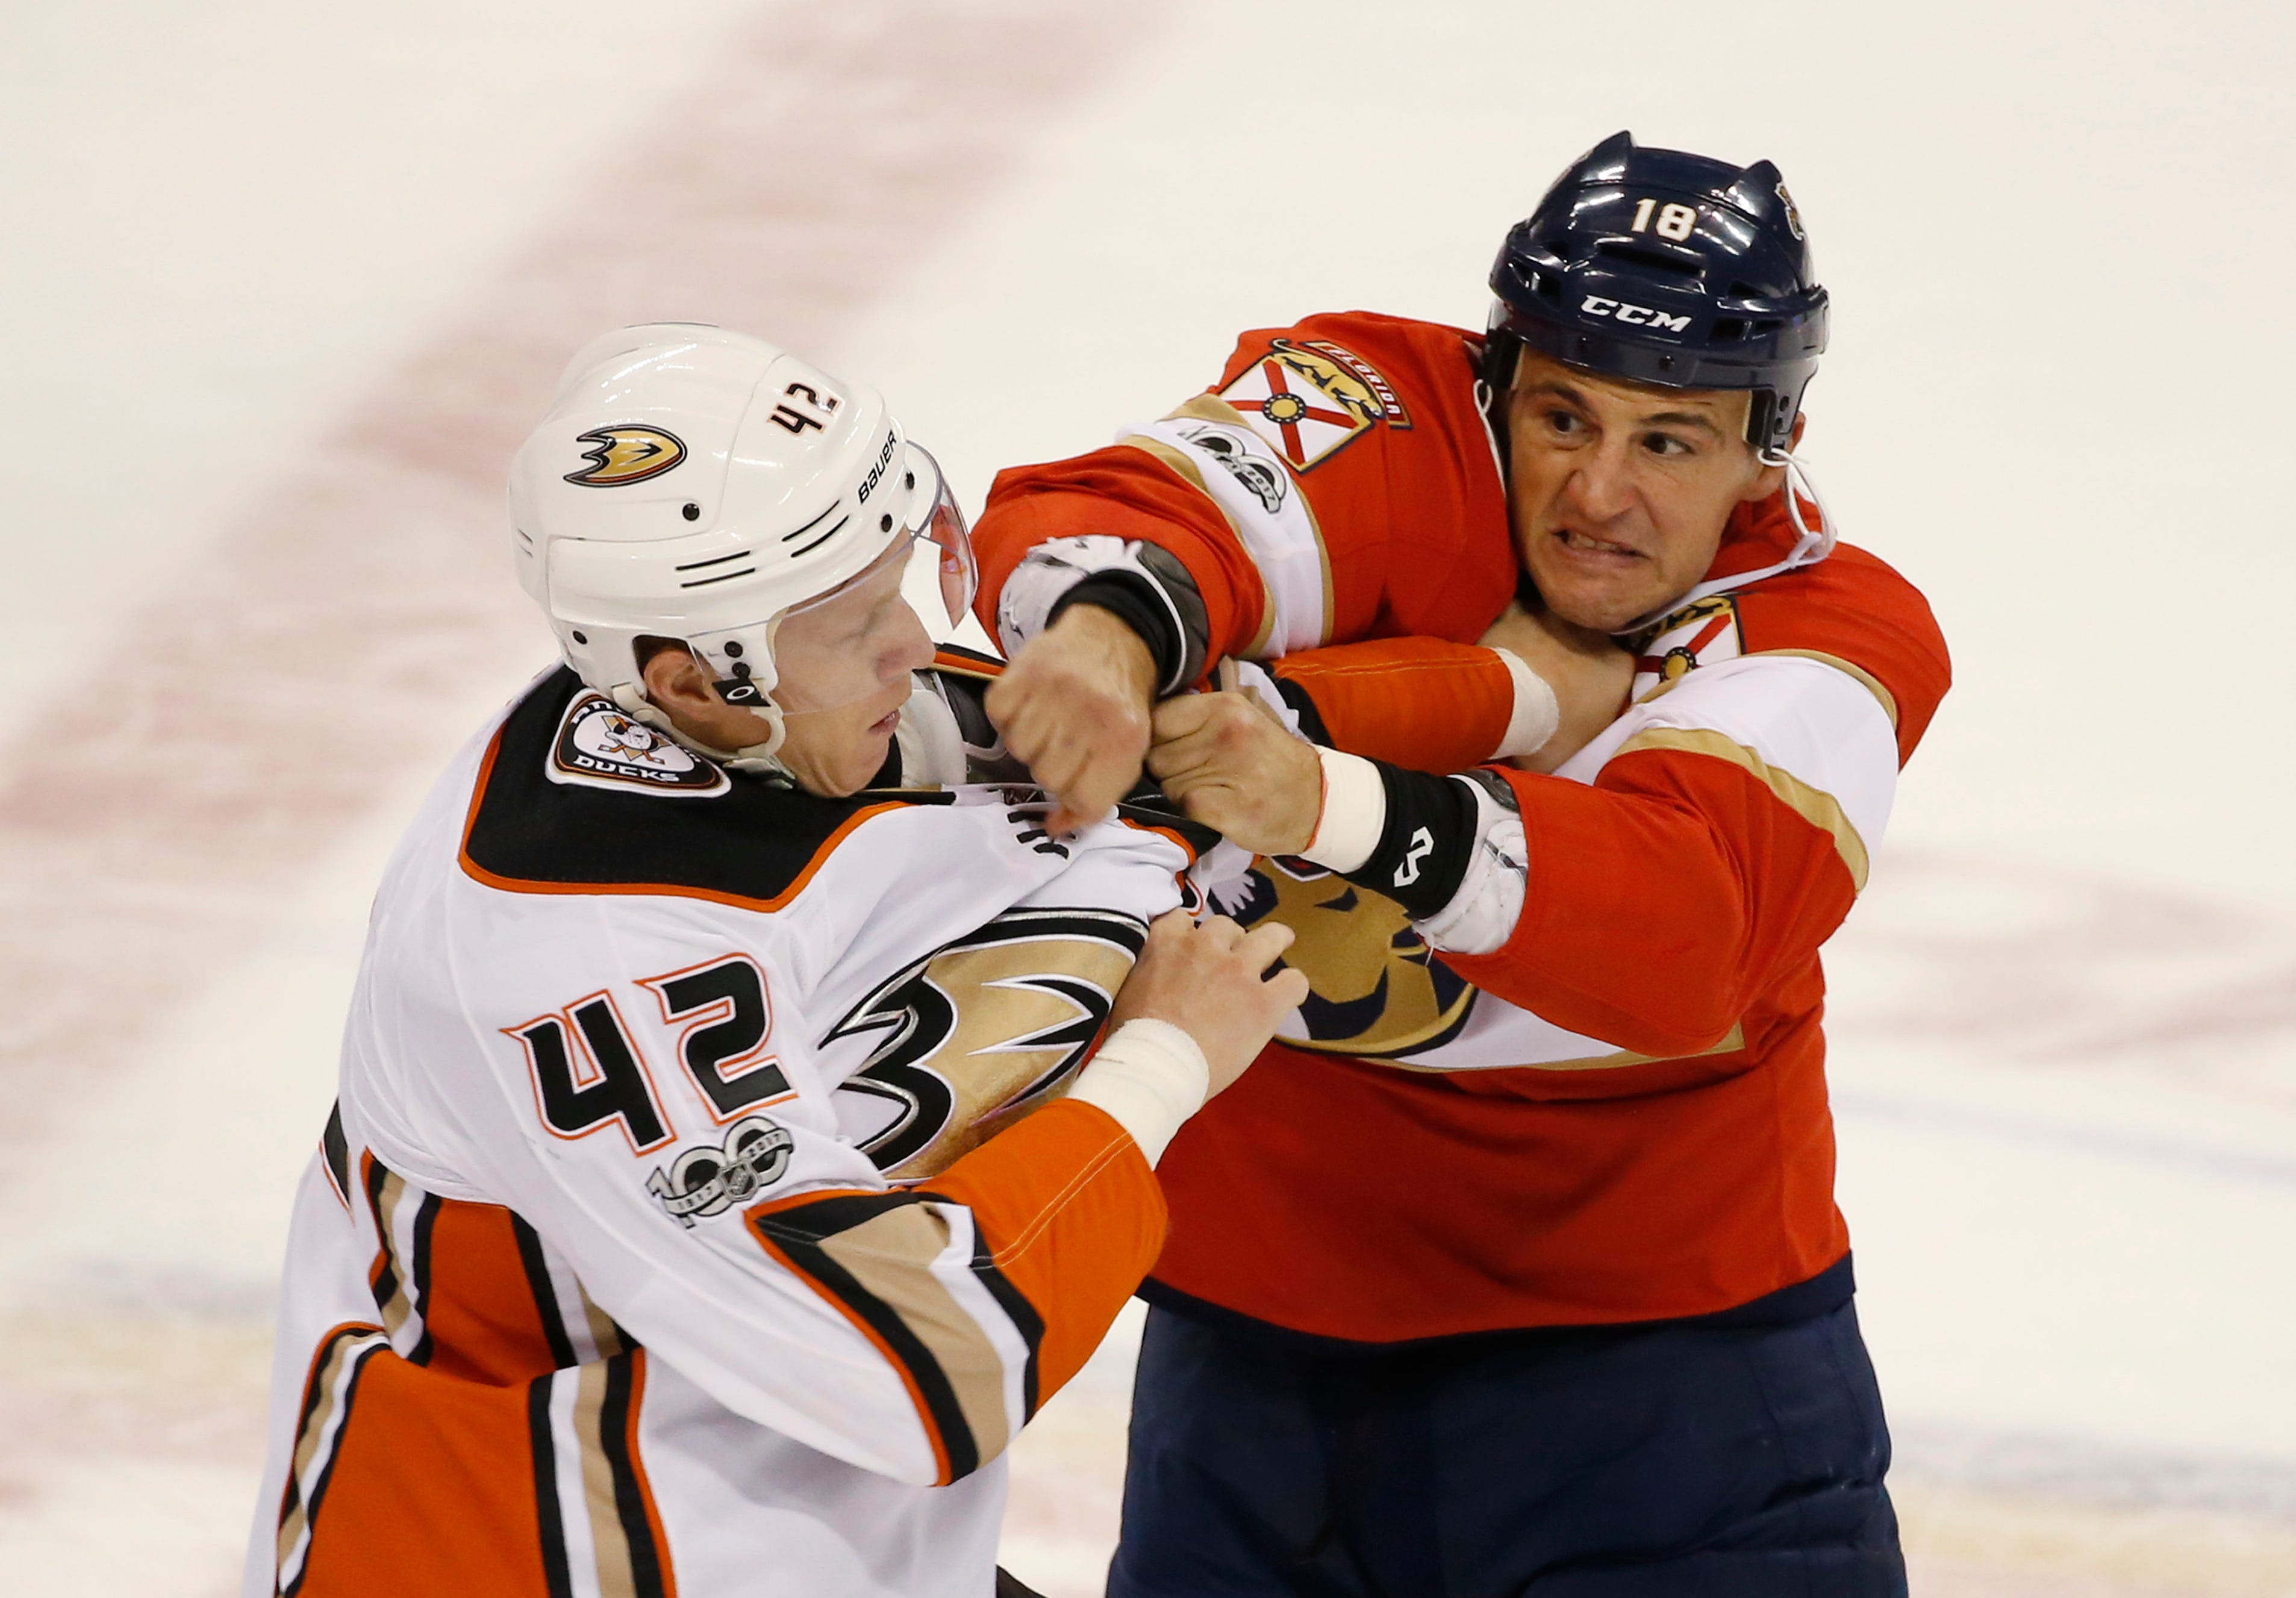 Vrbata's 7 career hat trick lifts Panthers over Ducks